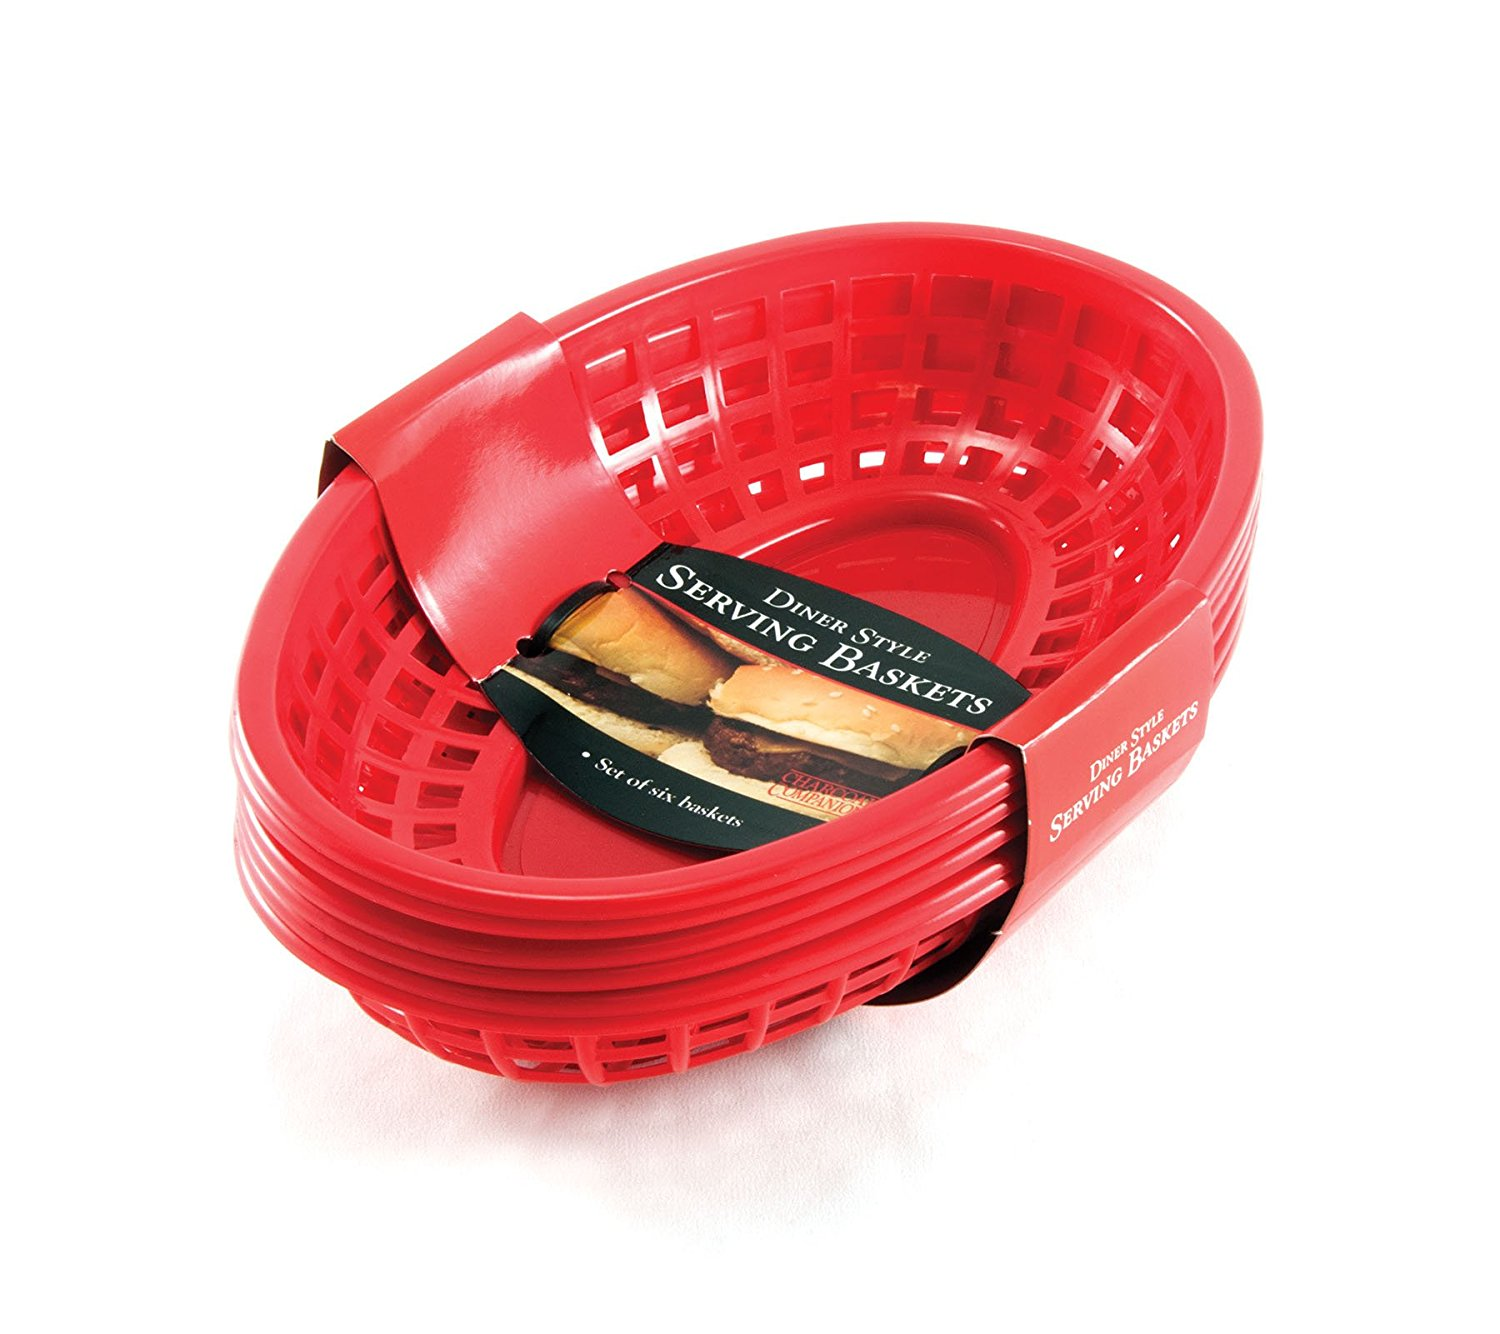 Charcoal Companion CC2019 Plastic Diner Style Serving Baskets, Set of 6, Red